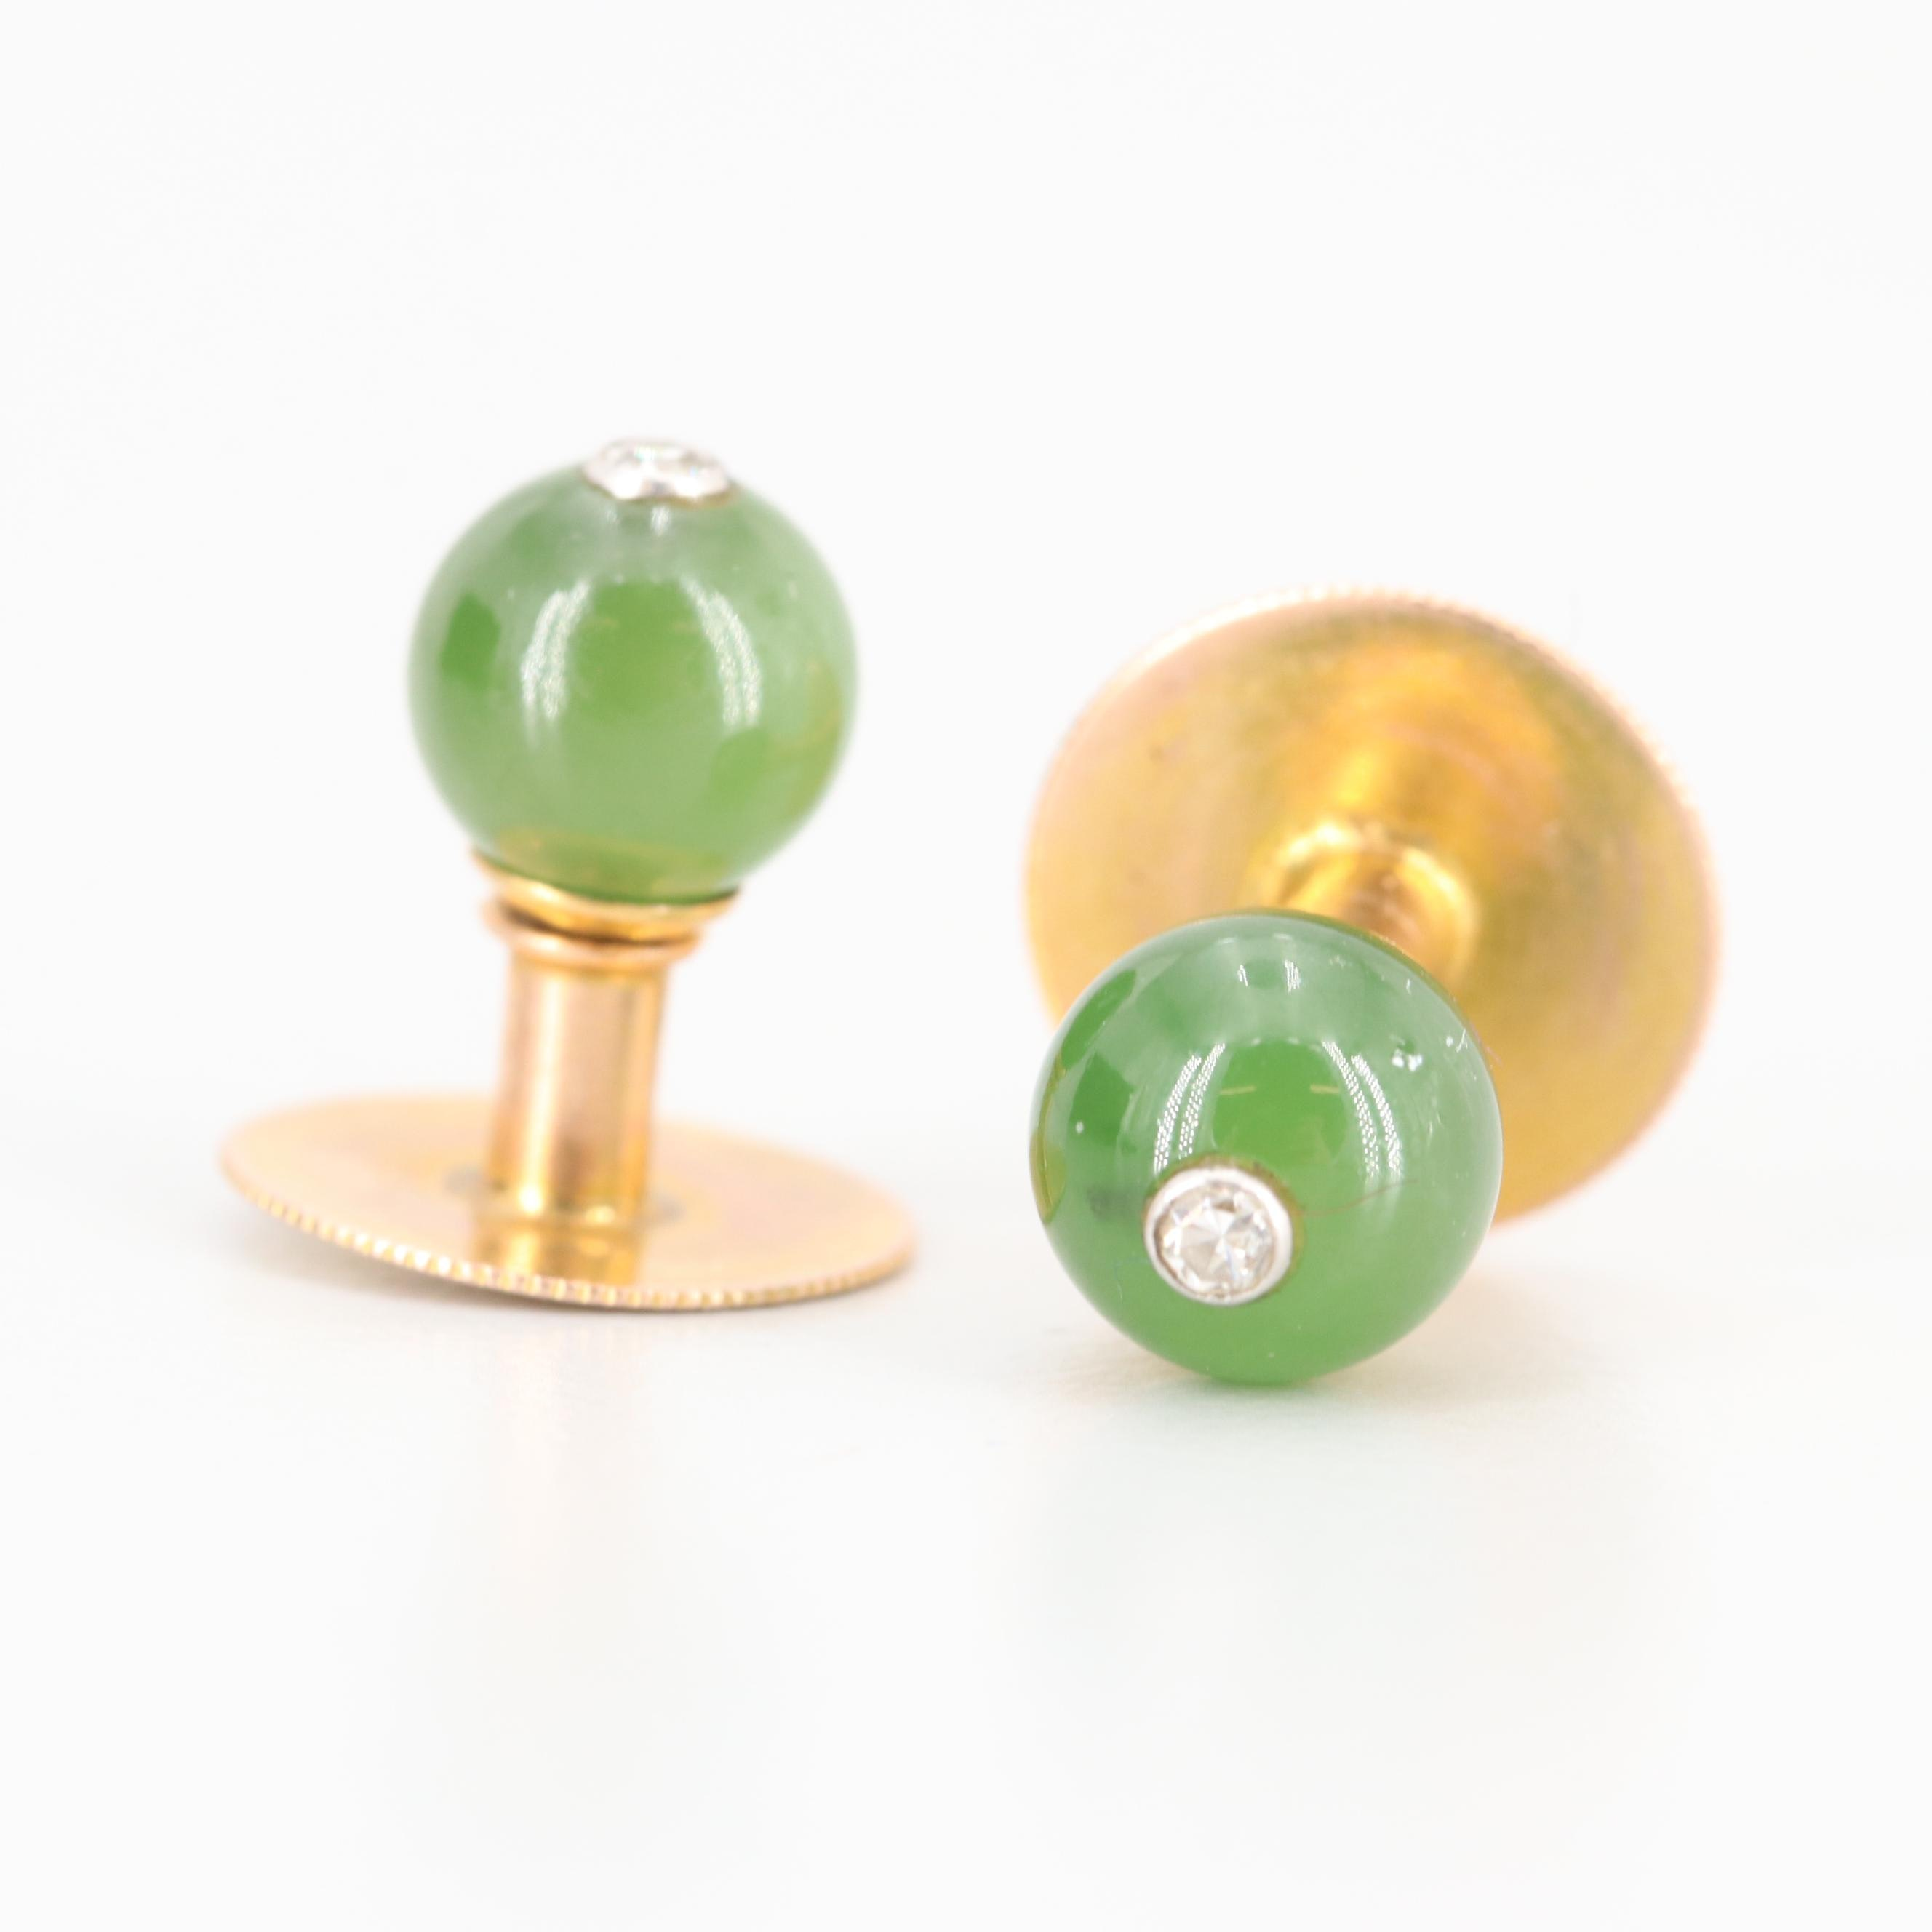 Vintage 10K Yellow Gold Diamond and Nephrite Shirt Studs with Platinum Accents